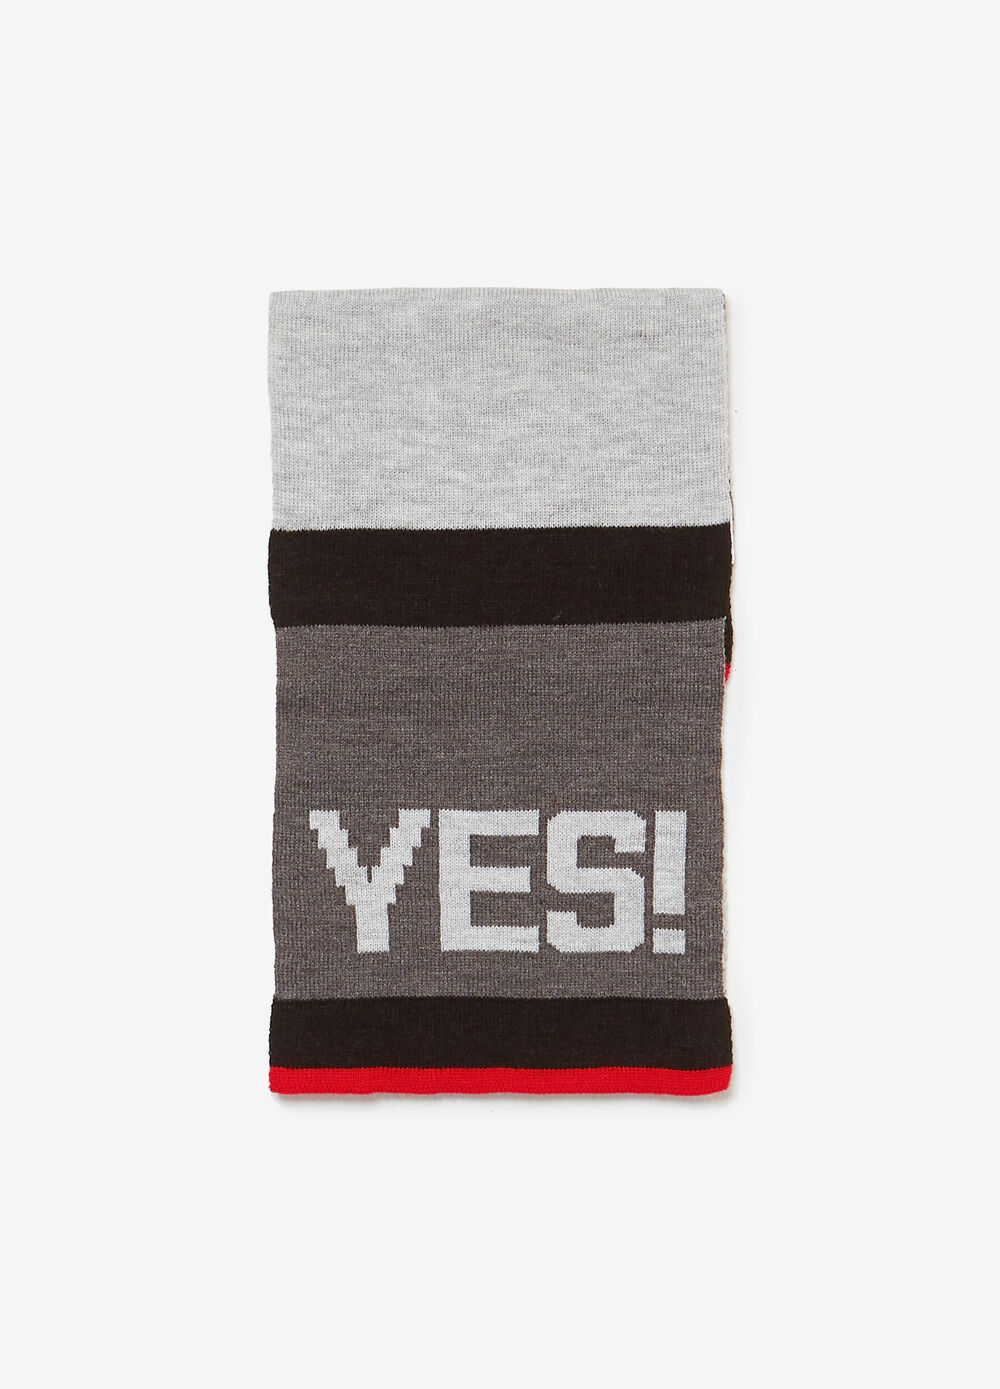 Striped patterned scarf with lettering print